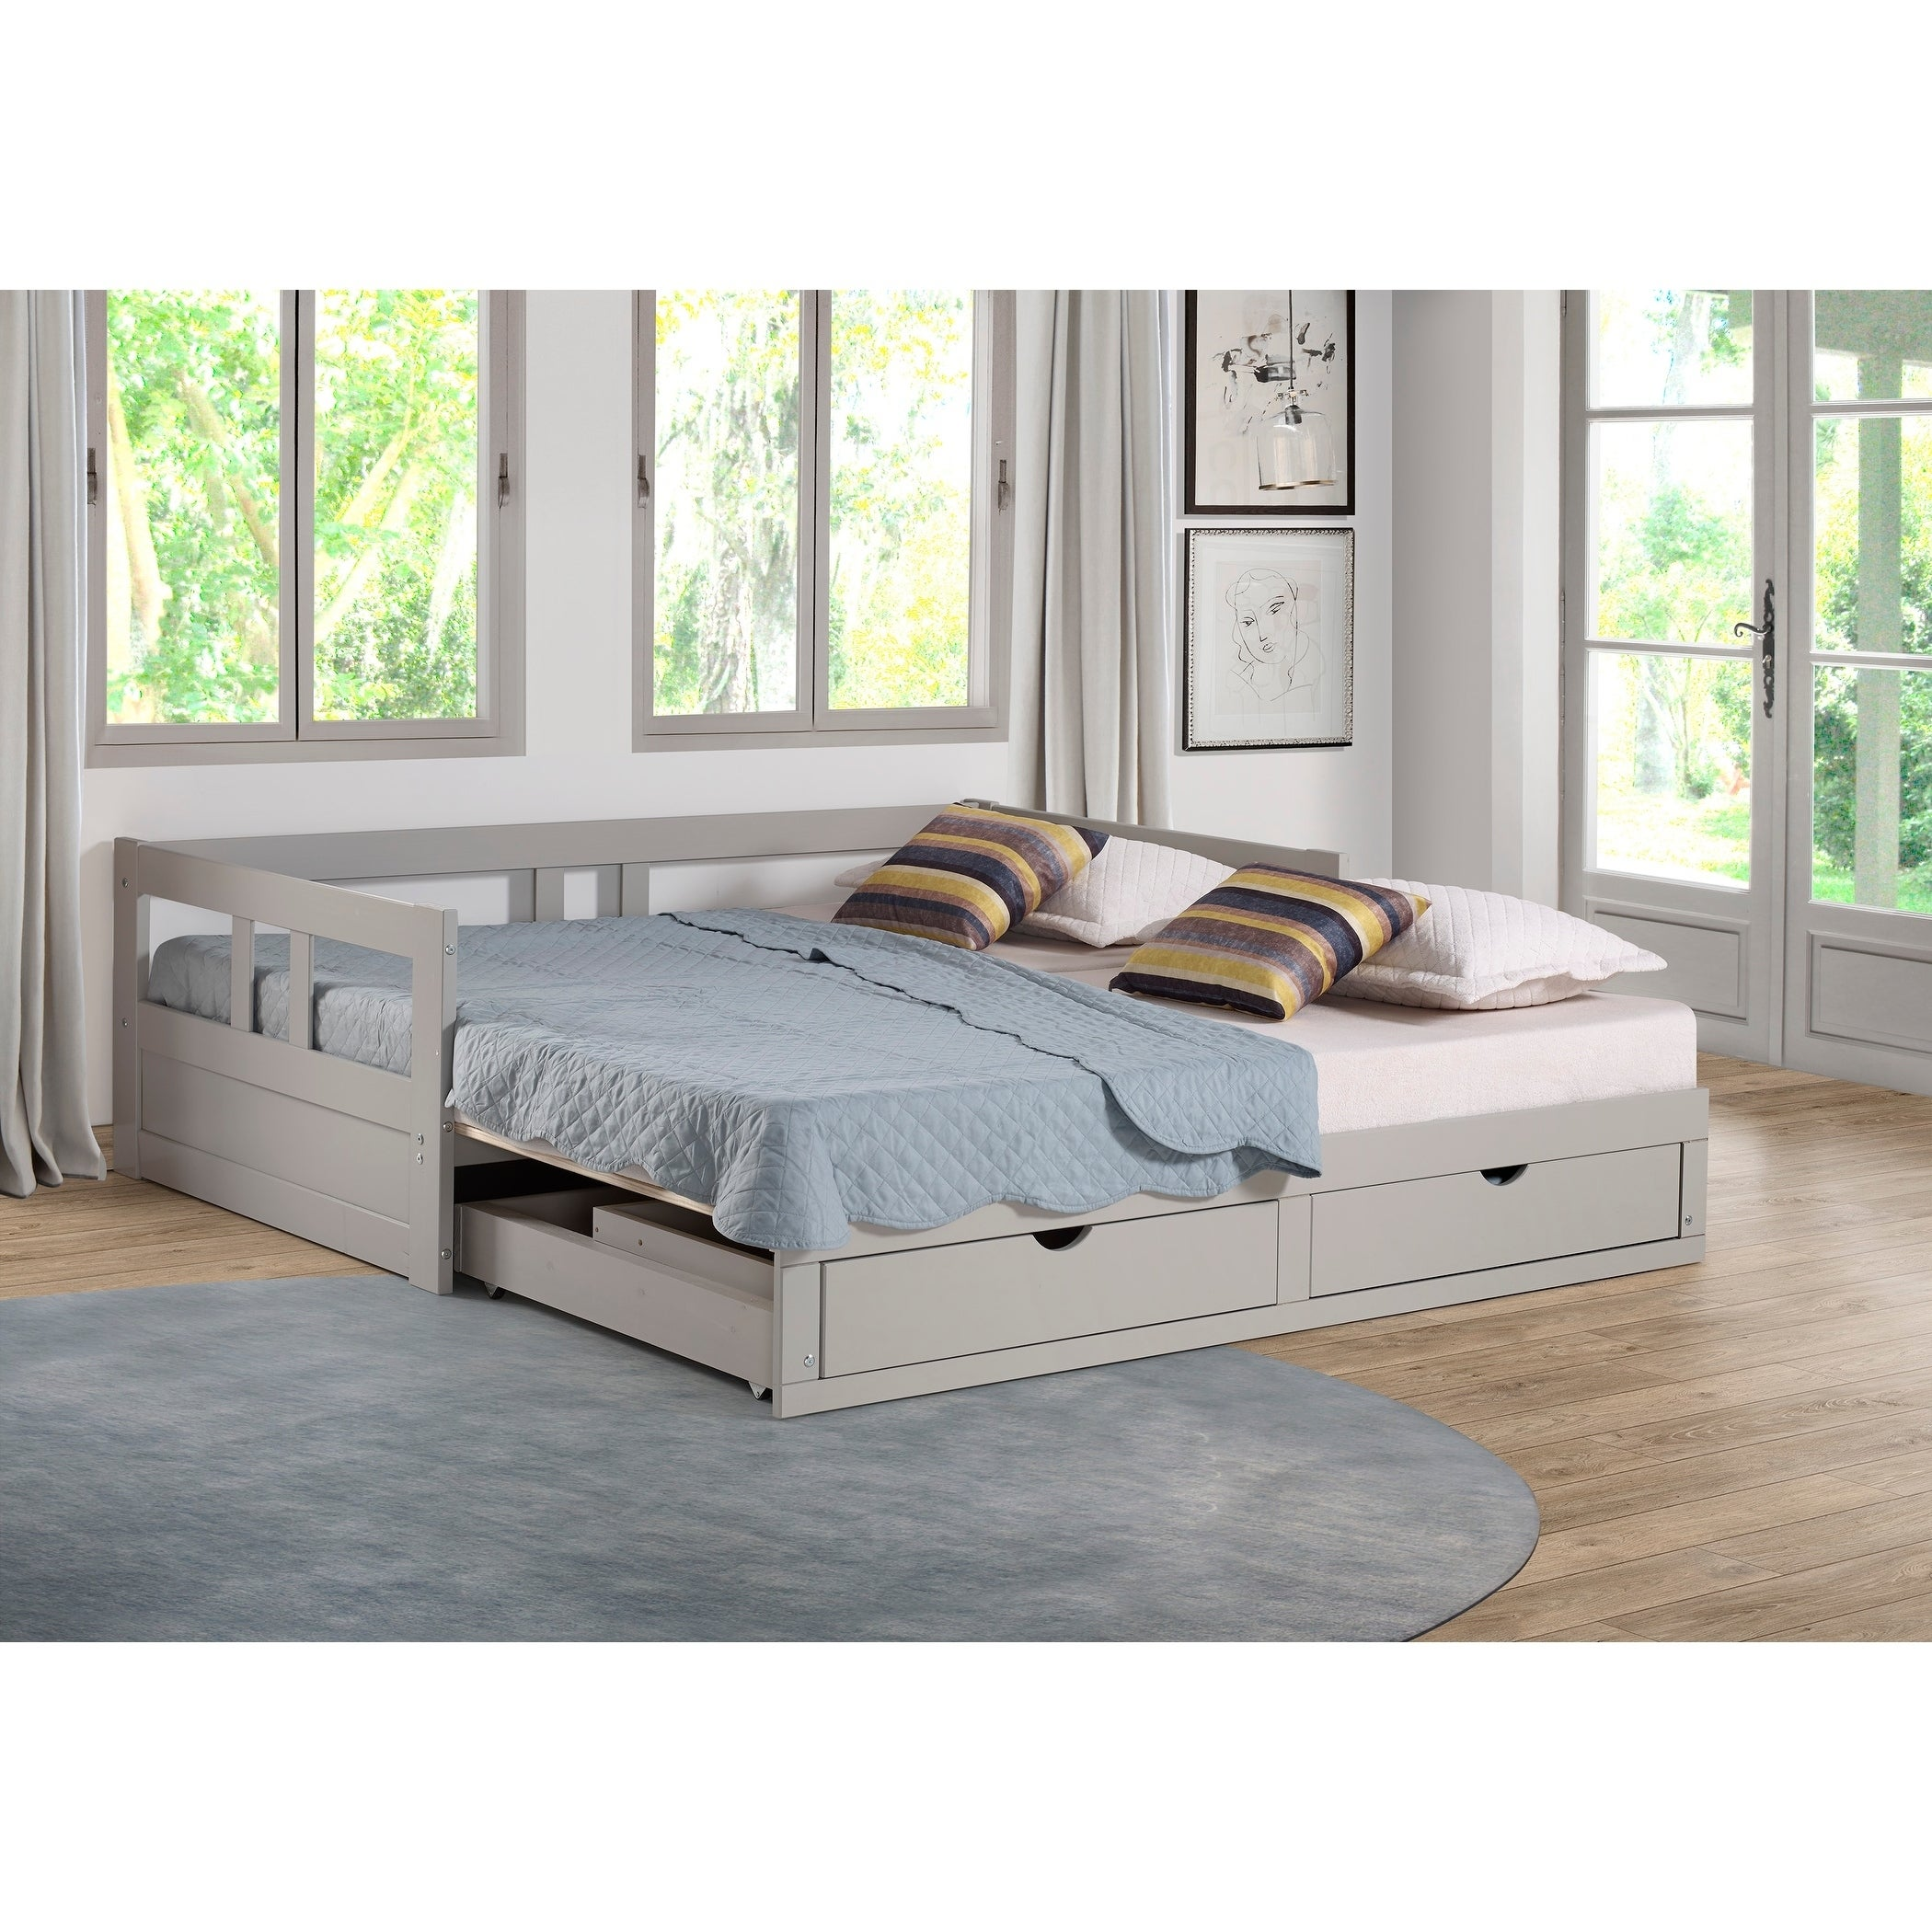 Shop Melody Twin To King Trundle Daybed With Storage Drawers On